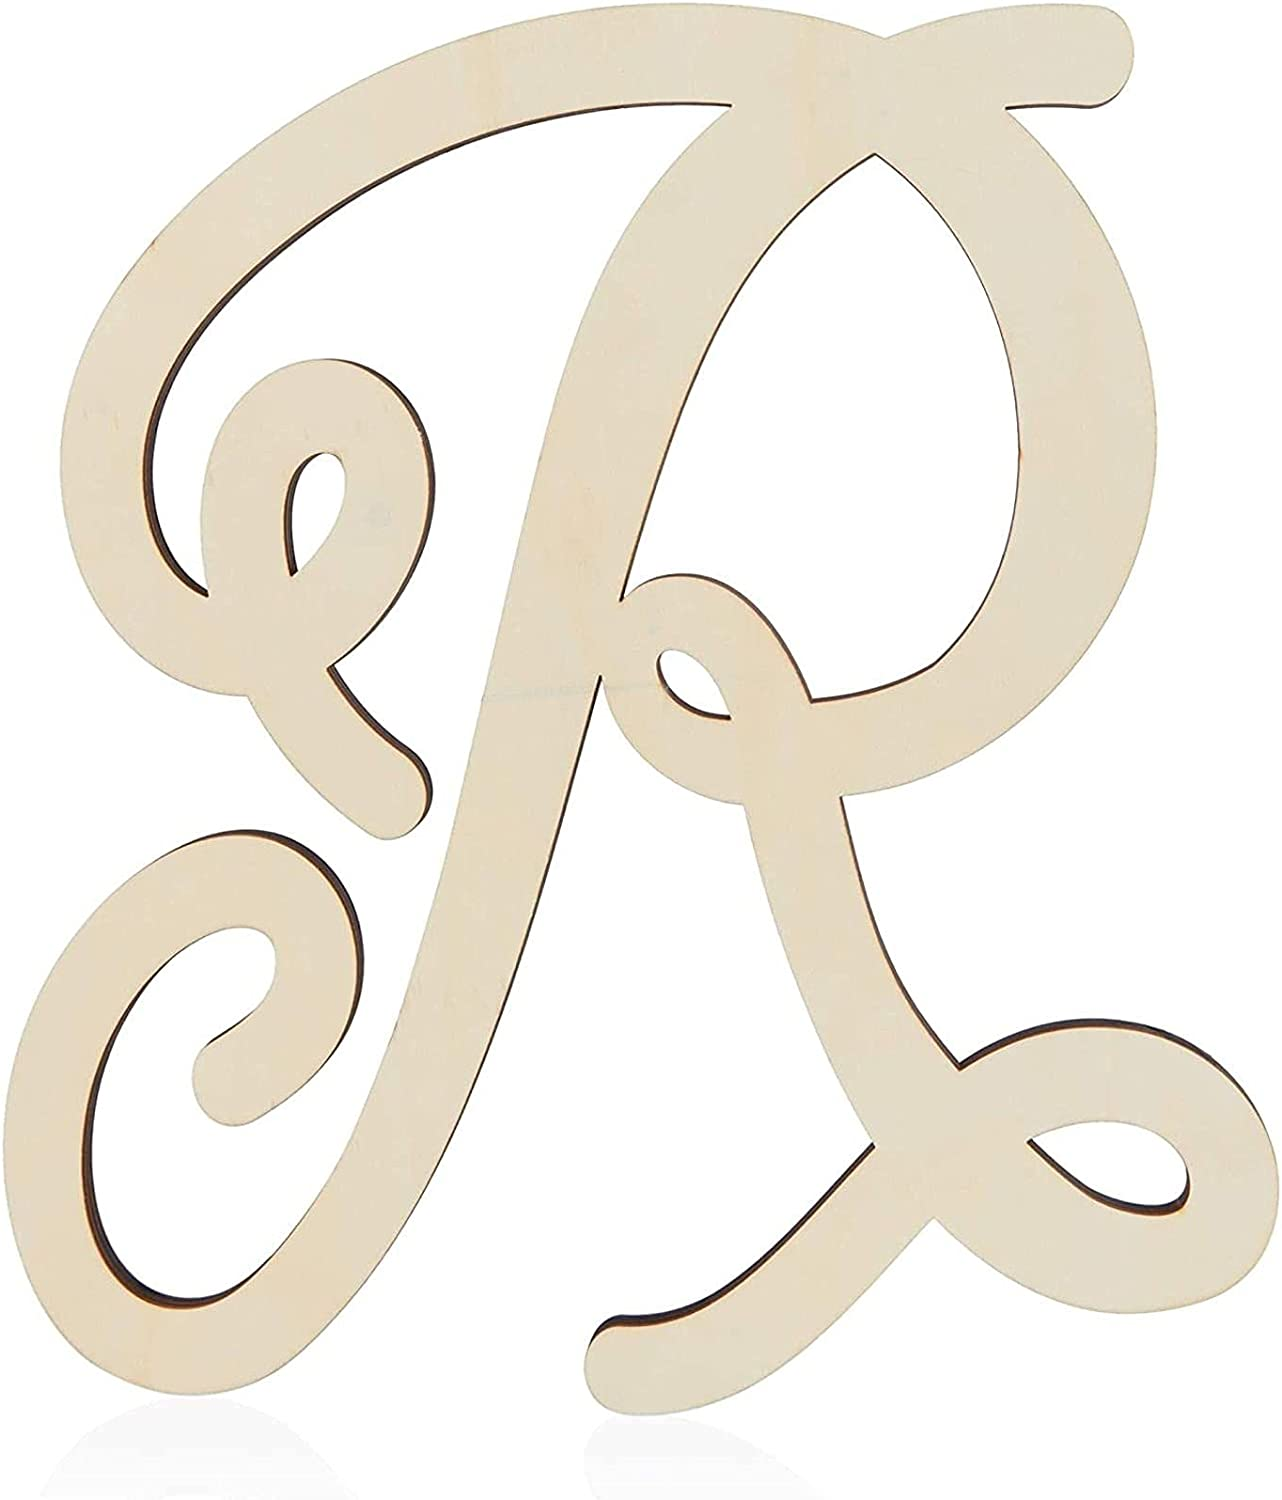 Wooden Monogram Alphabet Letters Decorative 13 R Inches Genuine Letter Popular brand in the world